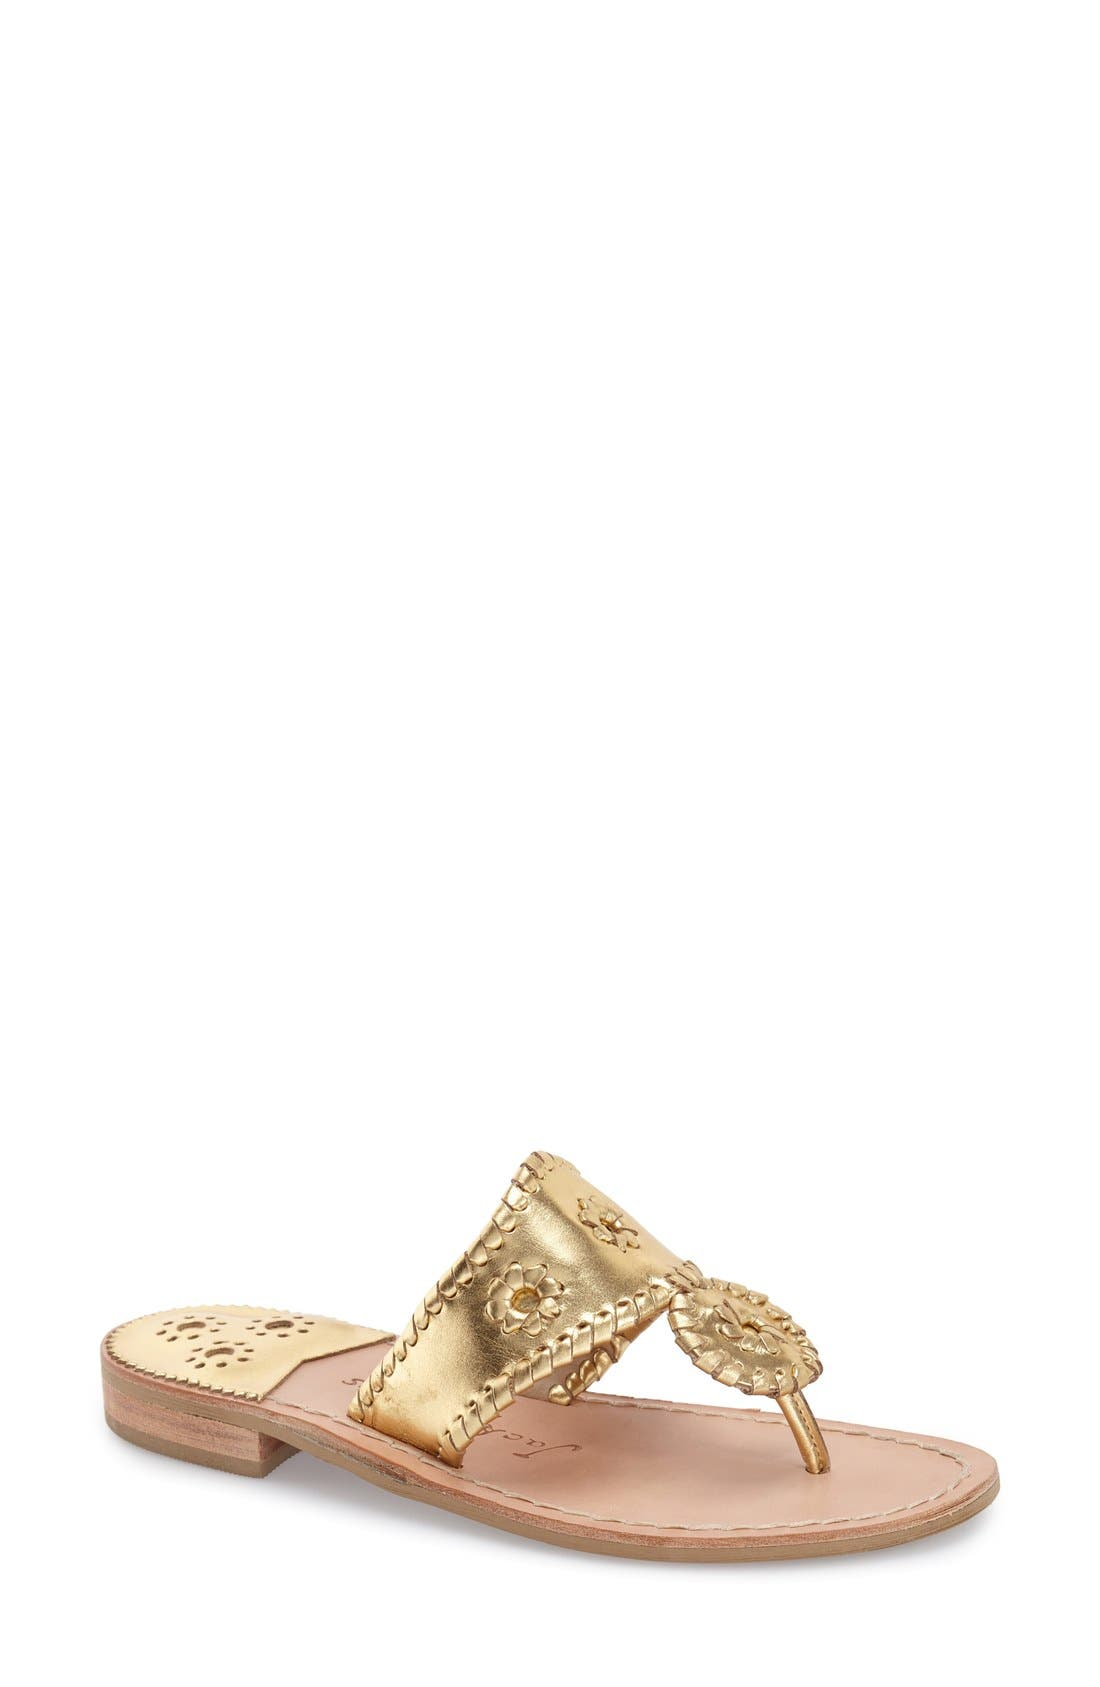 JACK ROGERS Palm Beach Whipstitch Thong Sandal in Gold